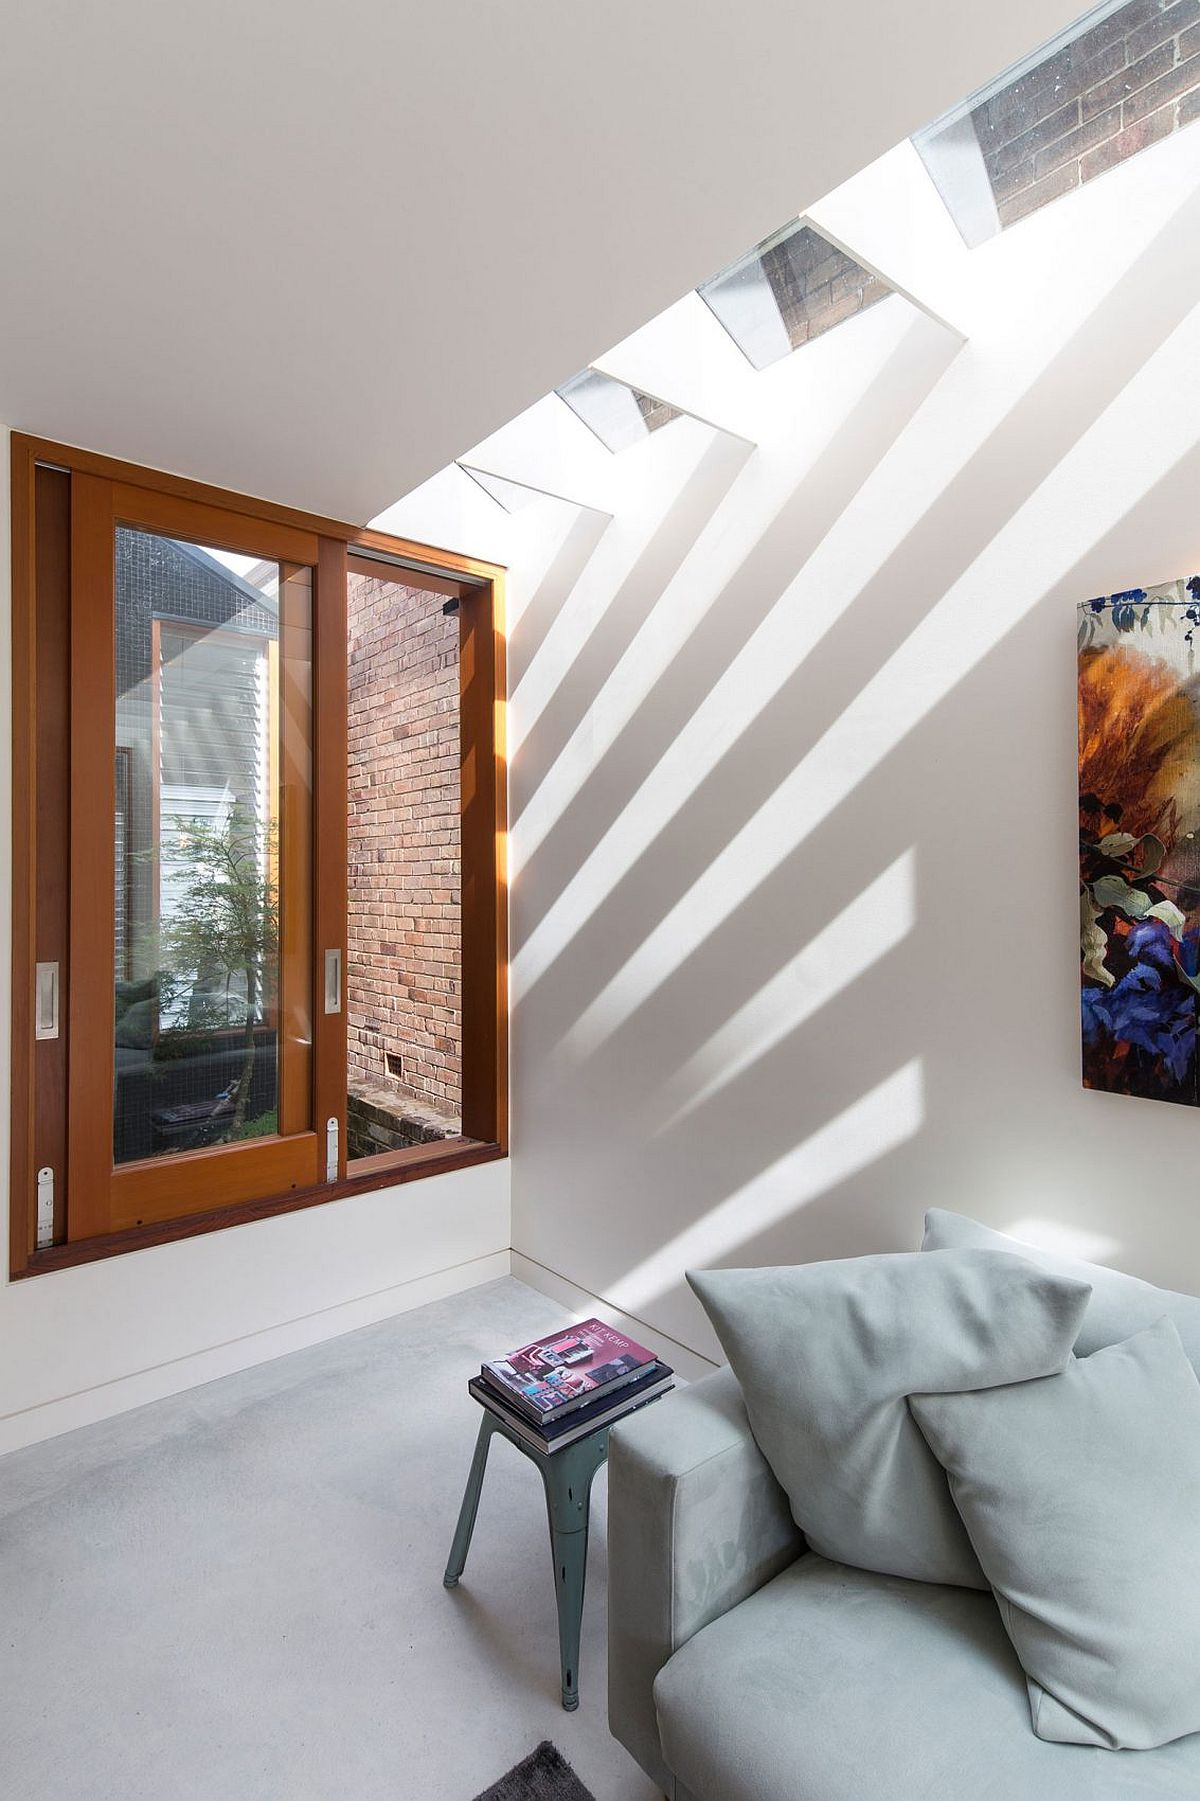 Skylight for the top level brings in ample natural ventilation indoors